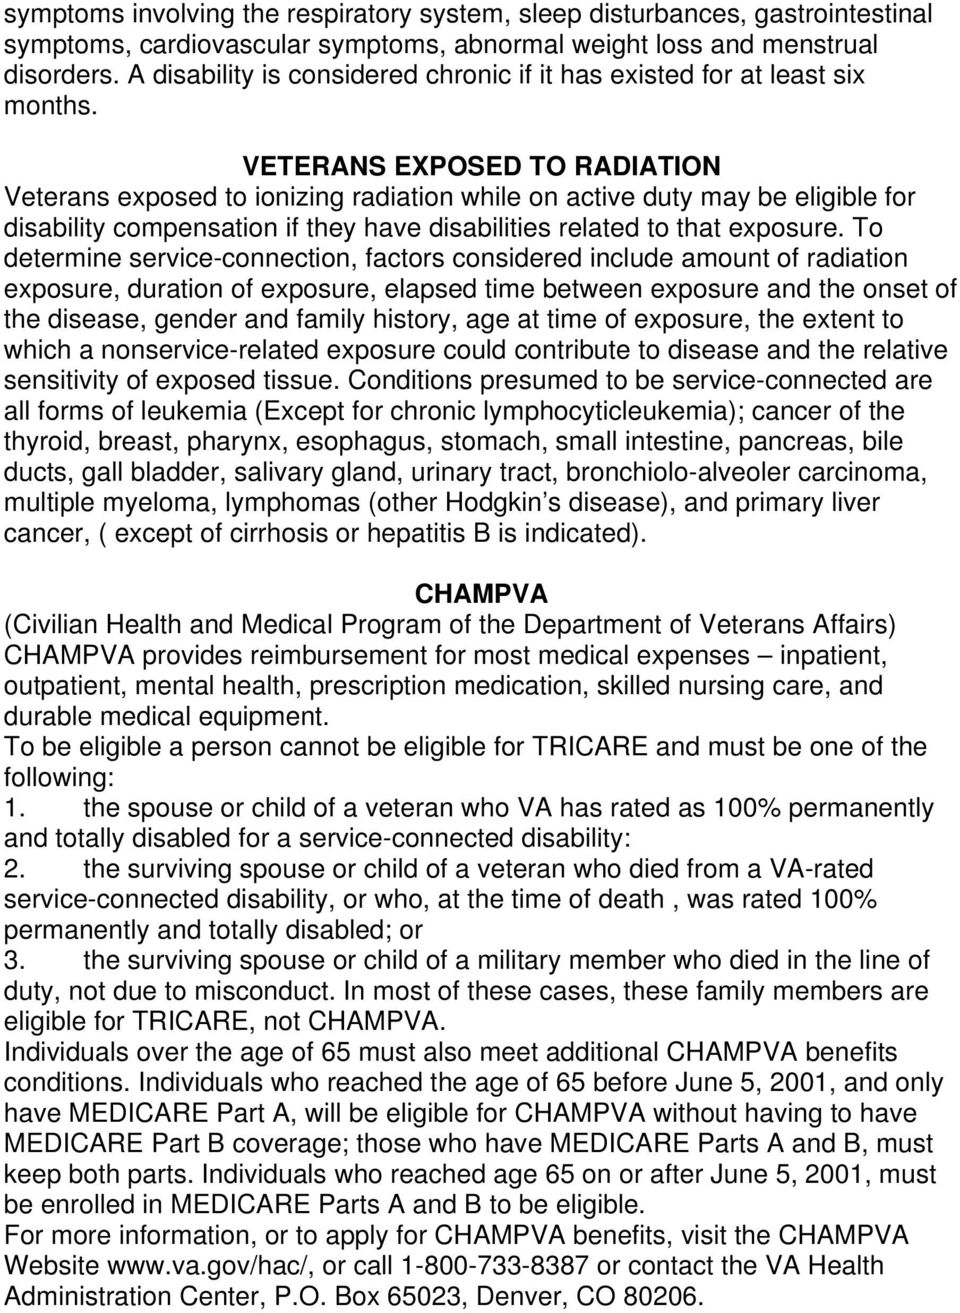 VETERANS EXPOSED TO RADIATION Veterans exposed to ionizing radiation while on active duty may be eligible for disability compensation if they have disabilities related to that exposure.